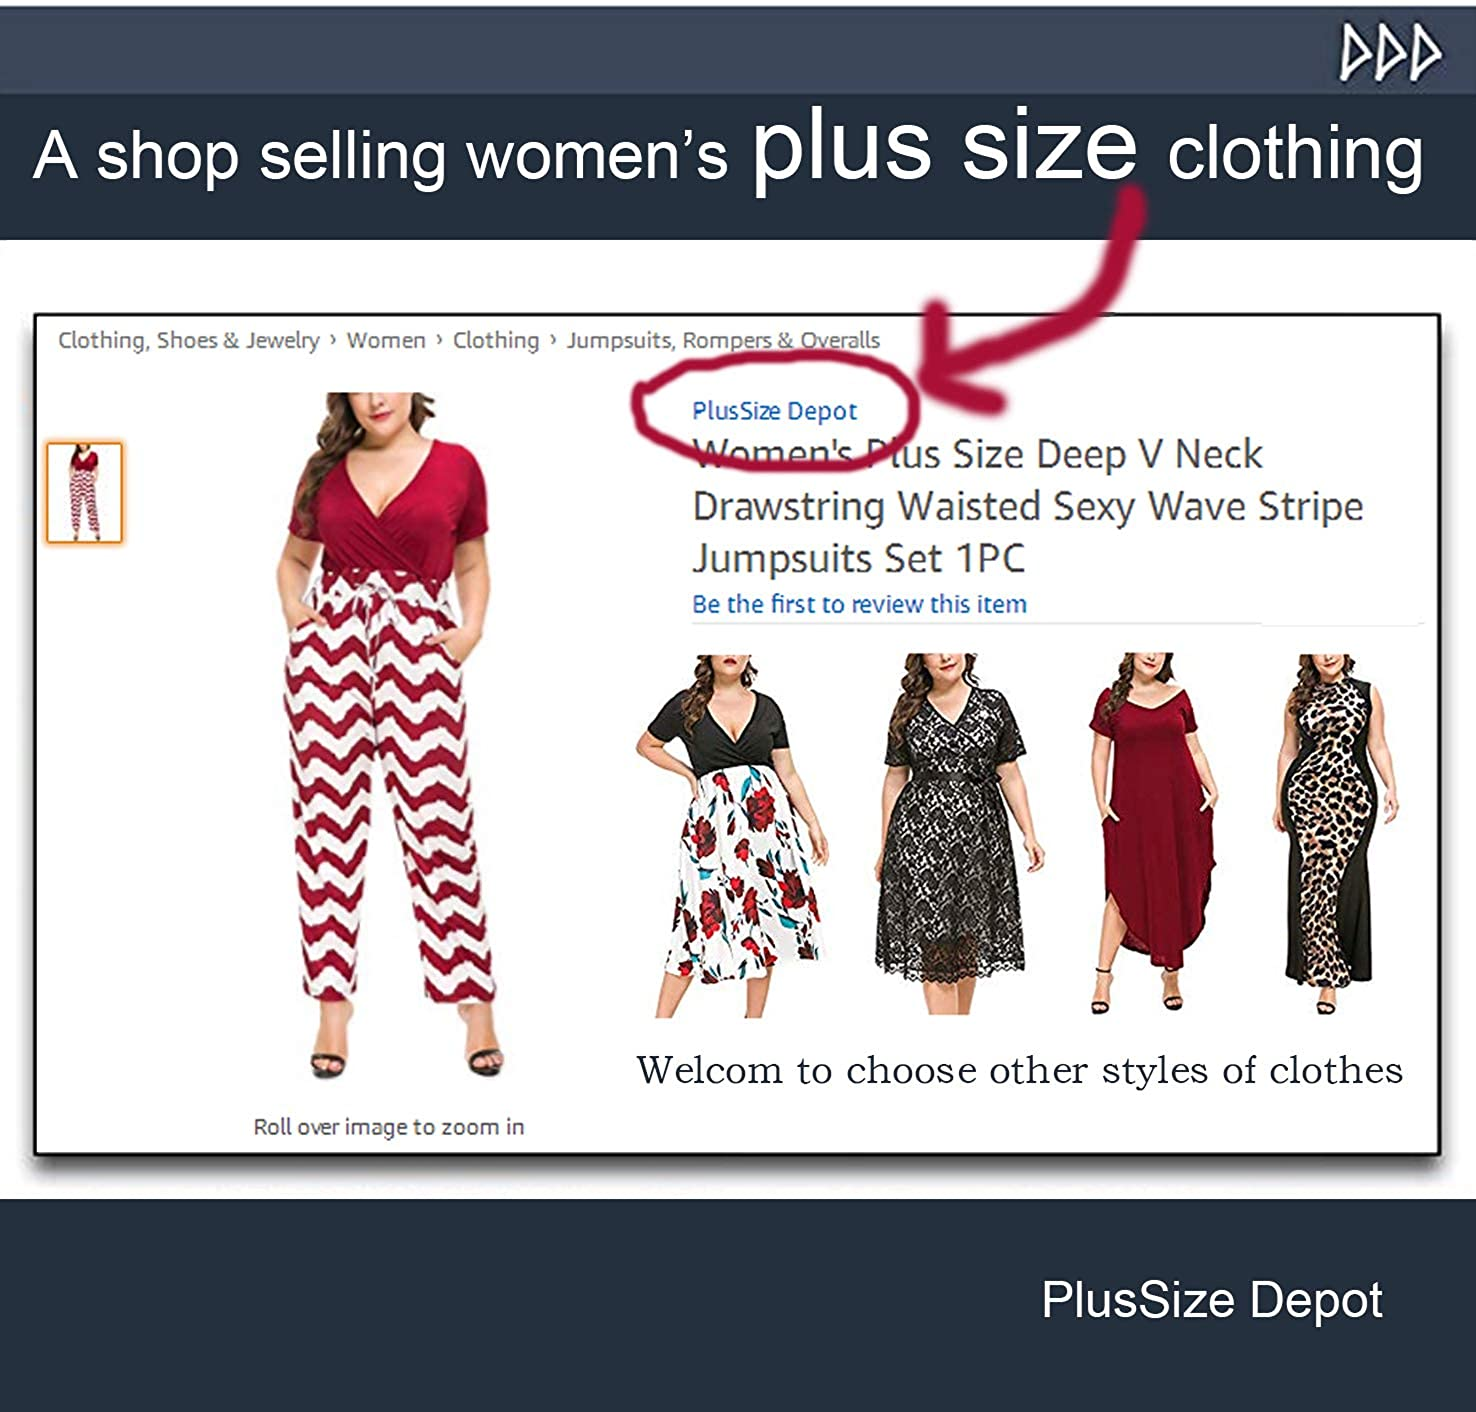 632646aa174 Amazon.com  PlusSize Depot Women s Plus Size Casual Leopard Print Maxi  Dress Sleeveless Long Dresses 1xl-5xl  Clothing